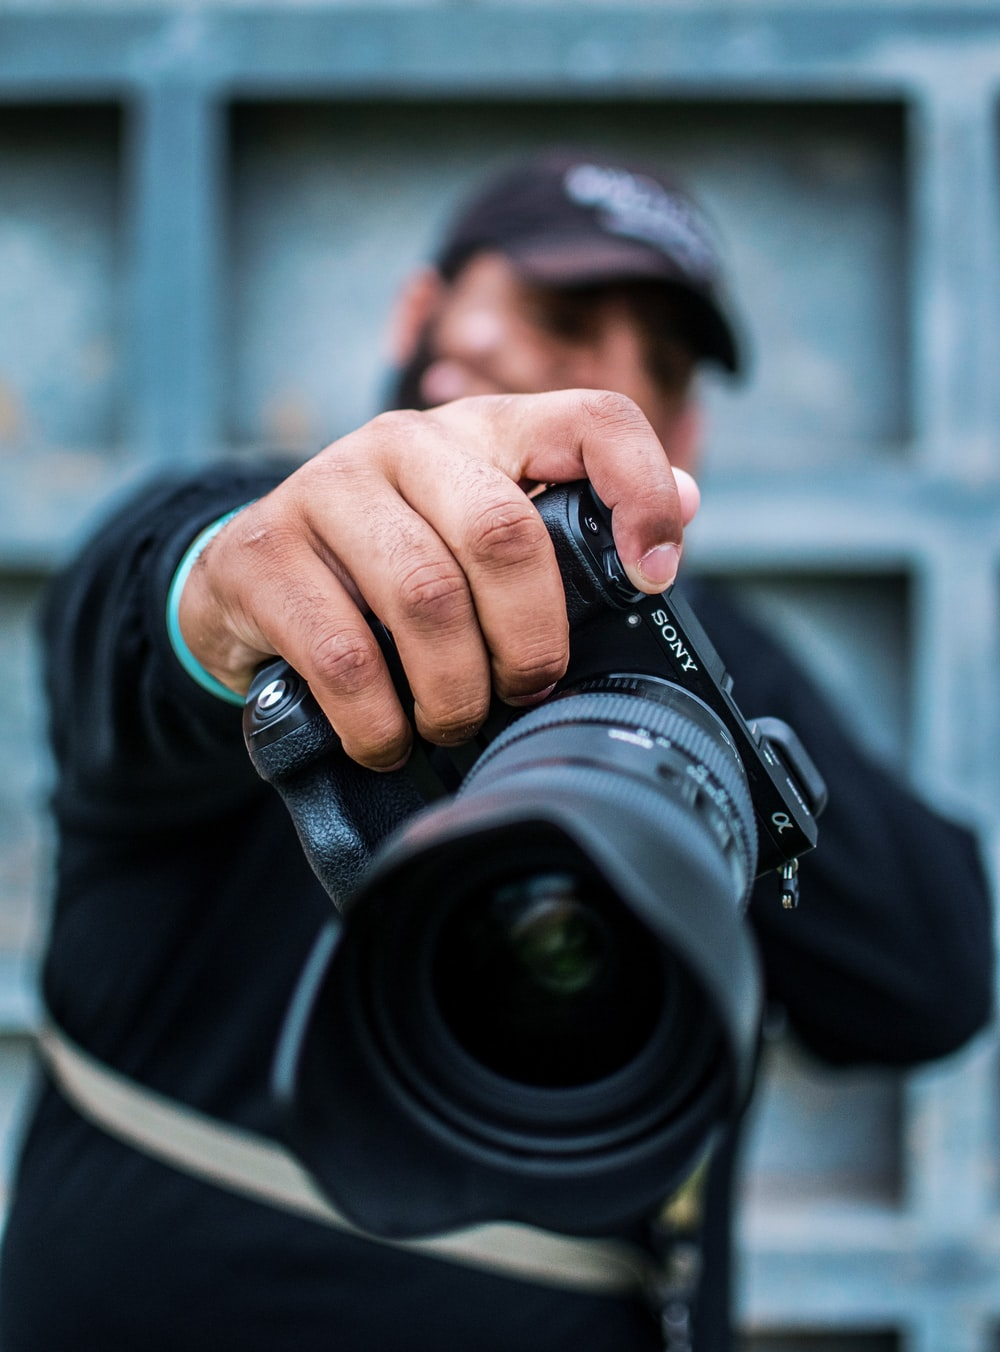 500 Photographer Pictures Hd Download Free Images On Unsplash